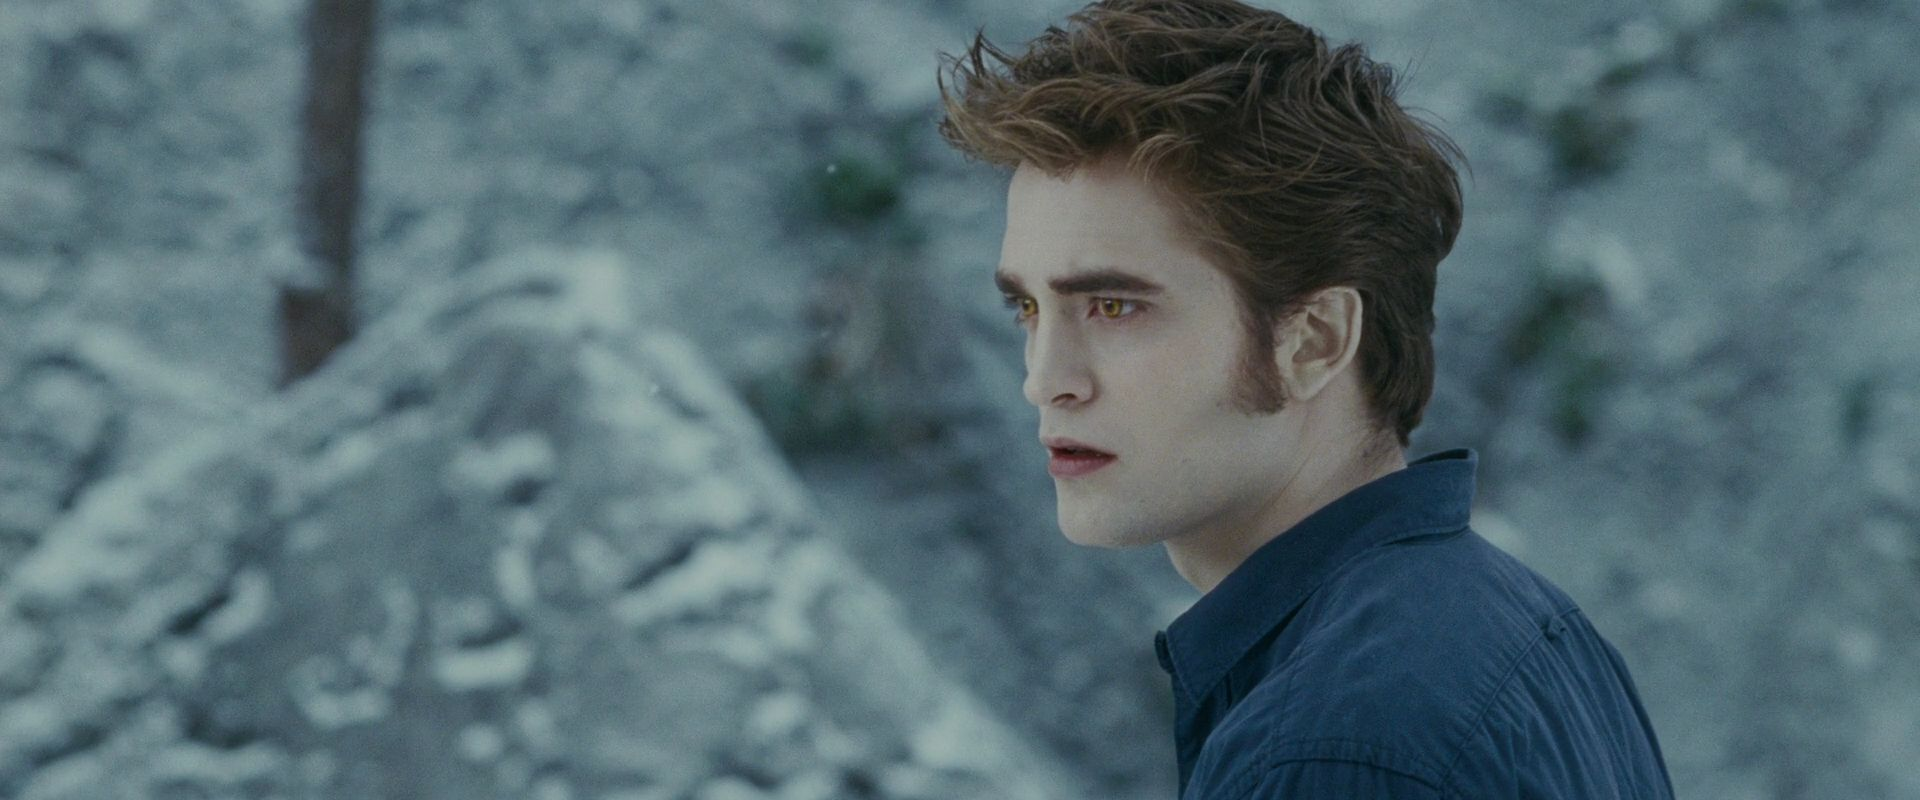 Edward cullen edward cullen photo 18085374 fanpop for Twilight edward photos